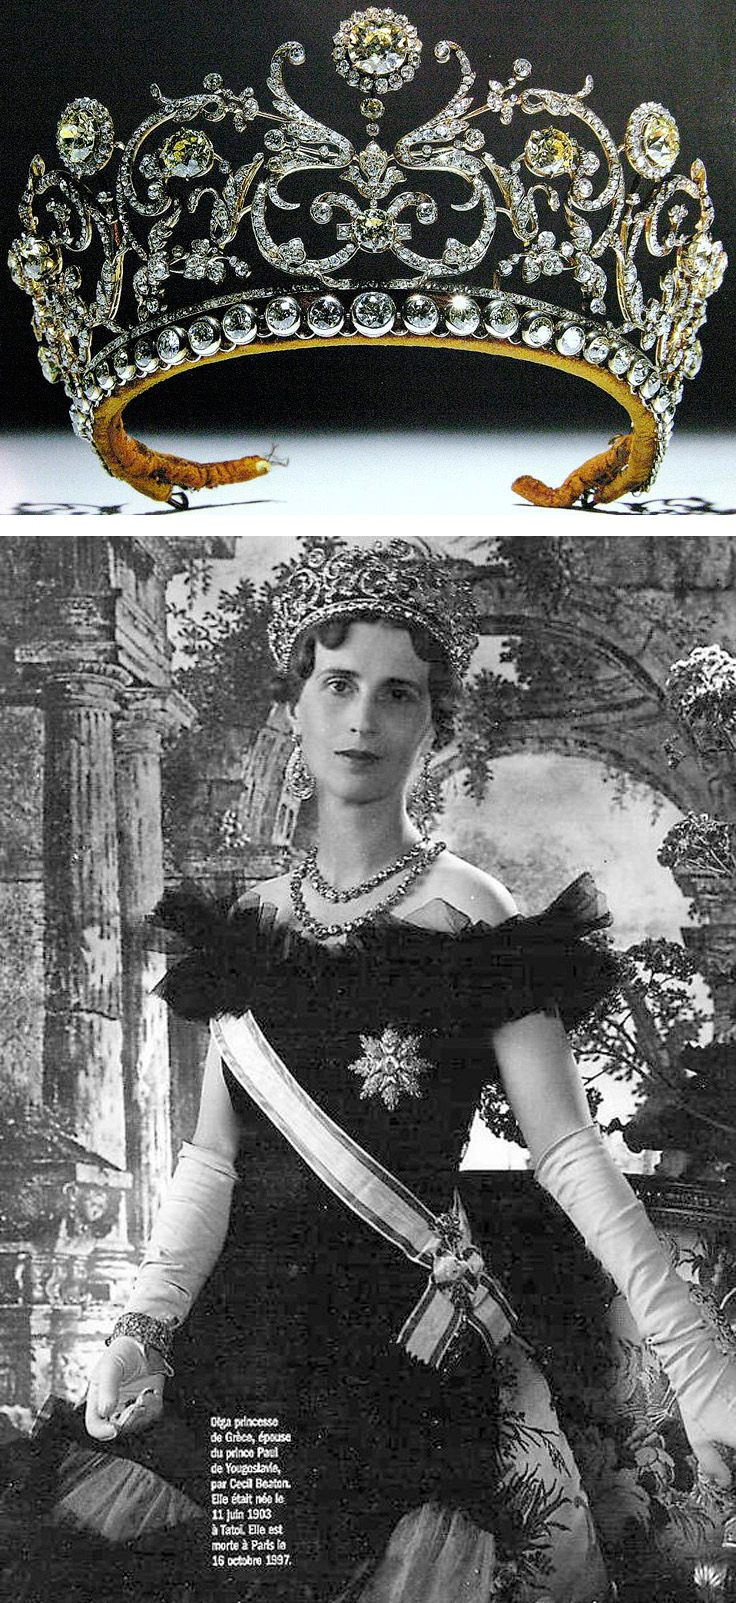 The Abamalek Lazarev Tiara. A tiara designed as conventionalized foliage and flowers centered with pale yellow diamonds, ordered by Princess Abamalek Lazarev of Georgia in 1907 and made by Boucheron. She bequeathed it to her nephew Prince Paul of Yugoslavia. The diamond rivière which runs along the base of the jewel is a later addition, apparently made by Princess Paul of Yugoslavia (nee Princess Olga of Greece and Denmark).